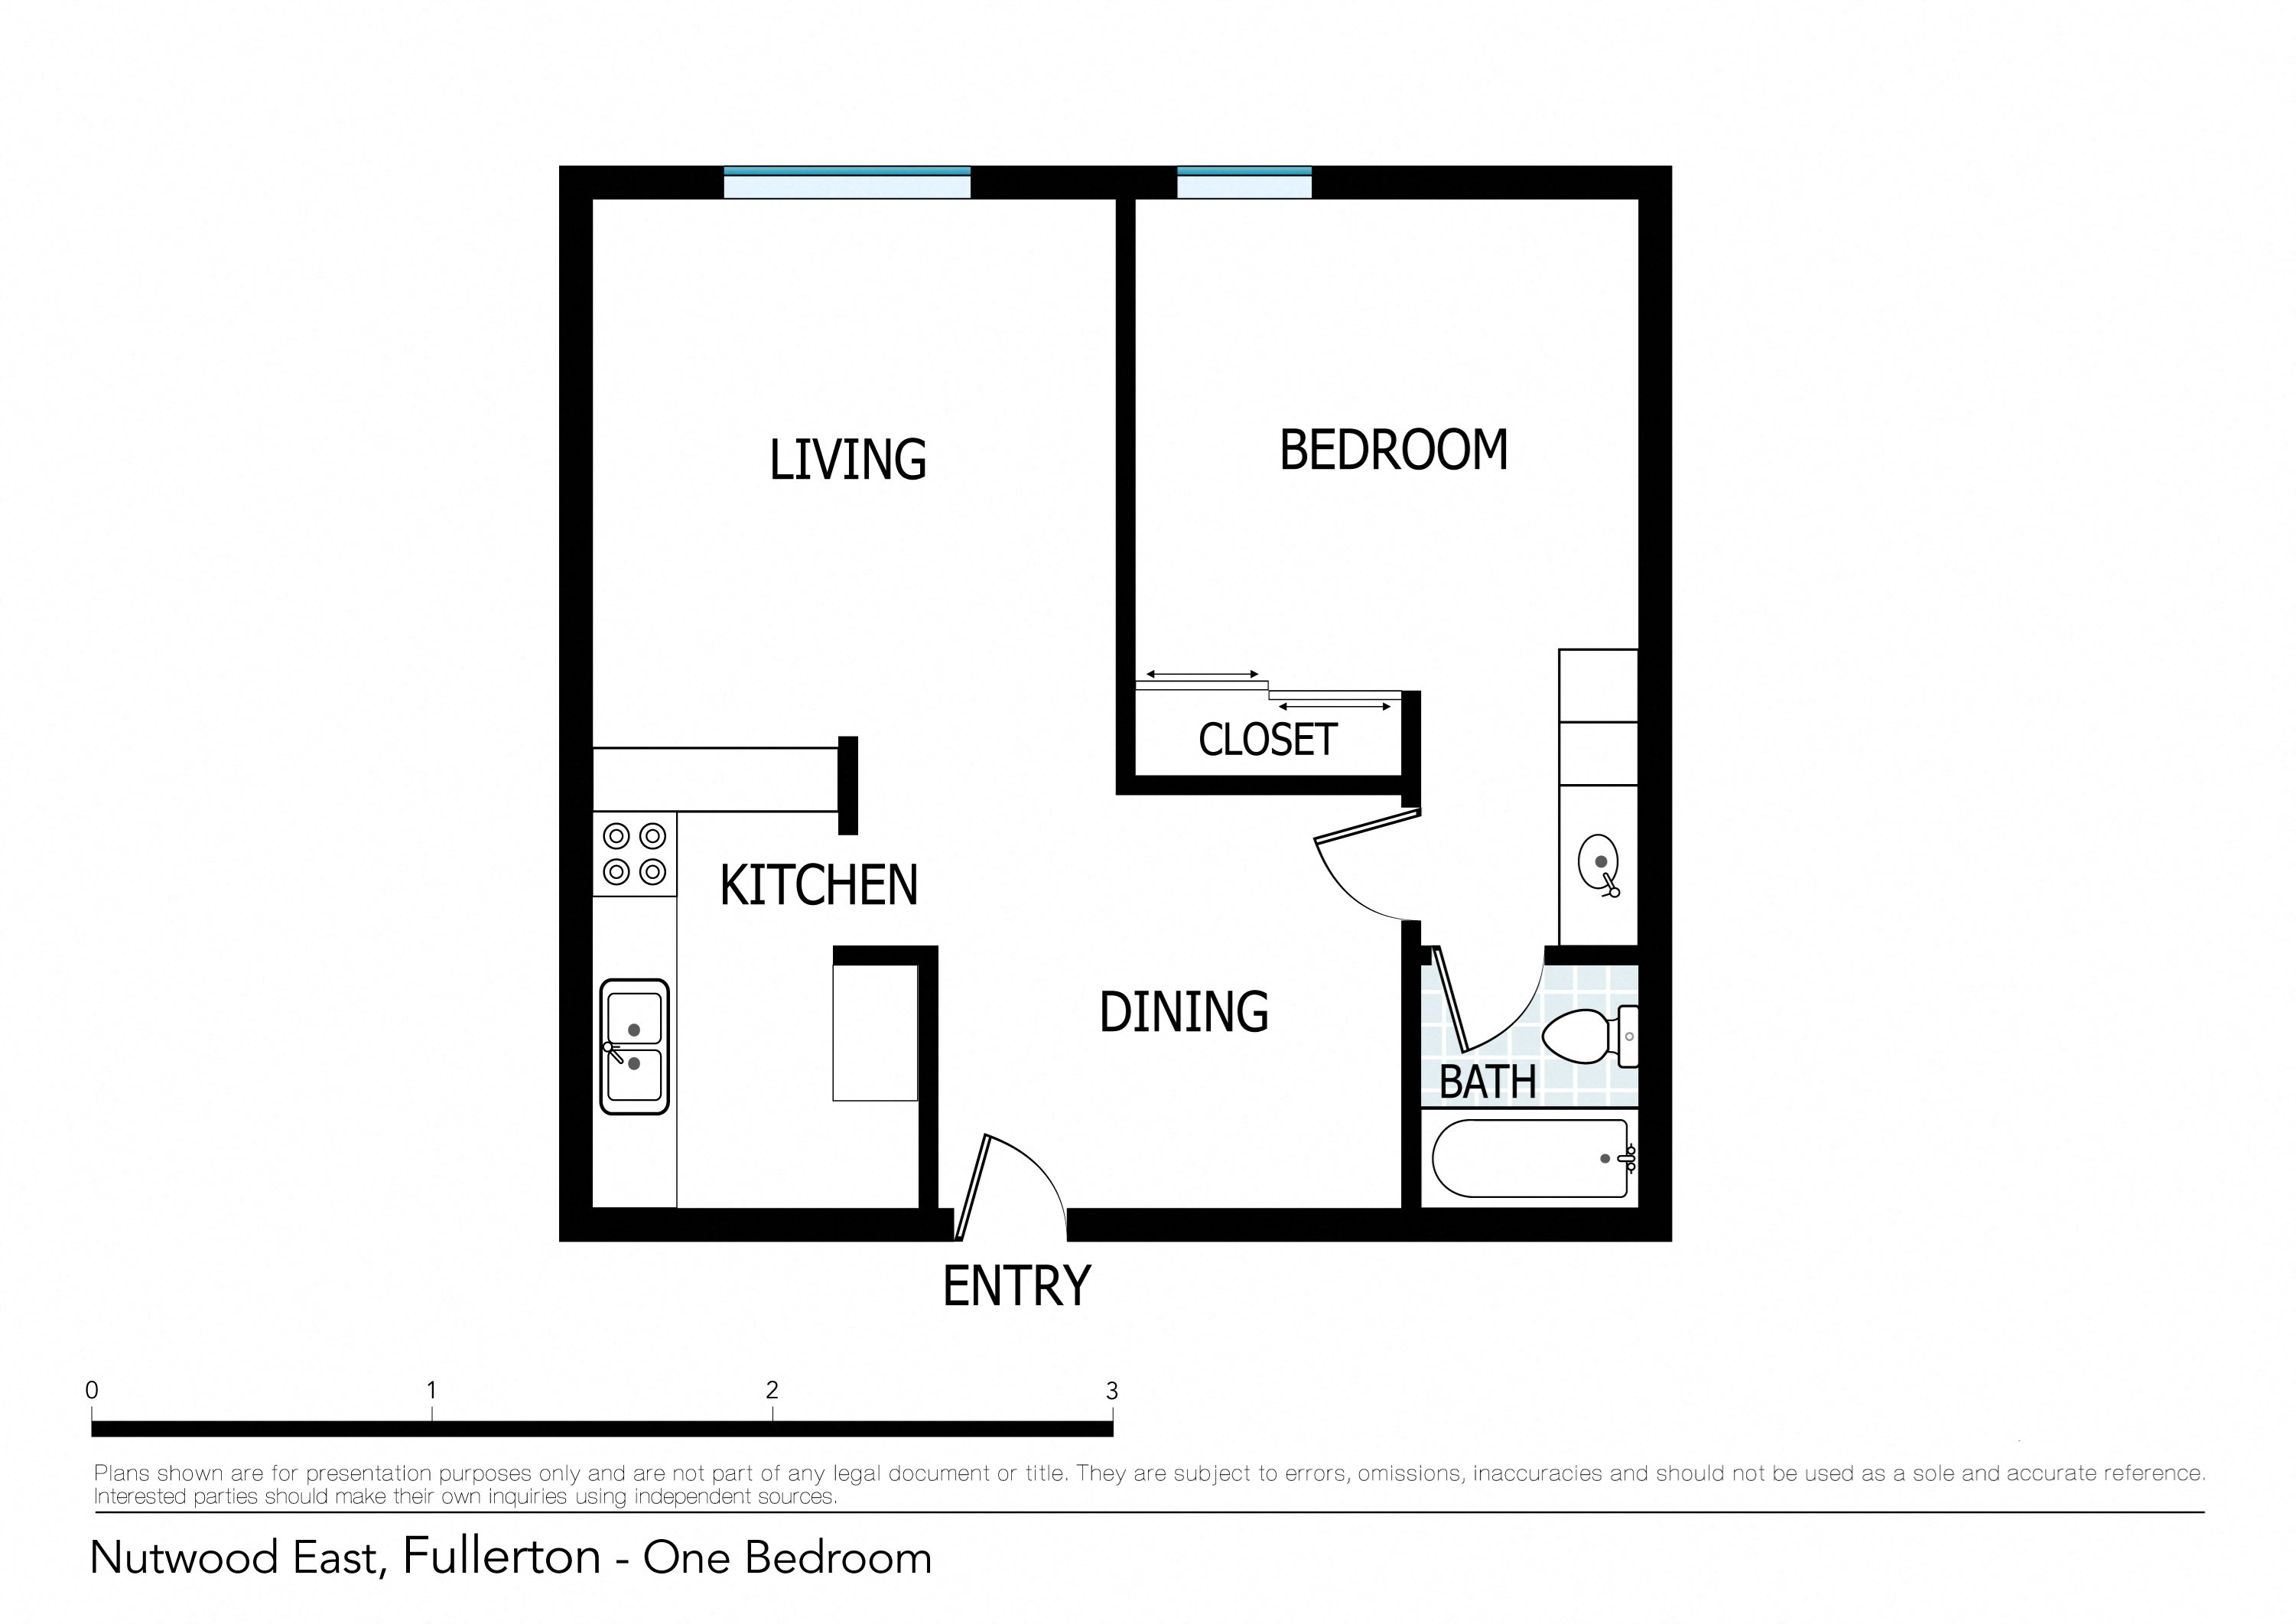 Floor Plans Of Nutwood East Apartments In Fullerton Ca